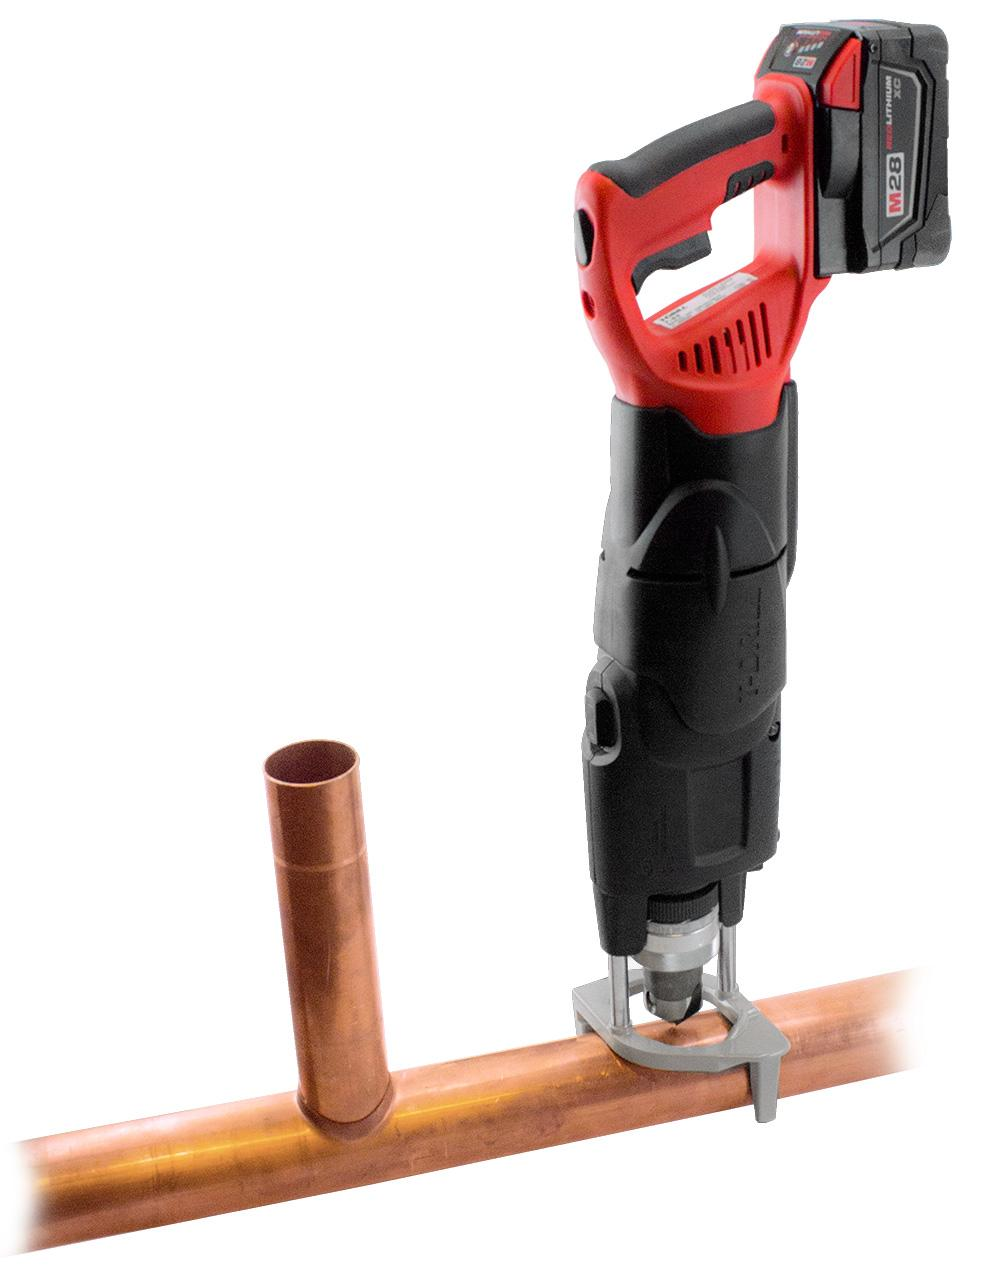 T-DRILL T-65B Cordless Heavy Duty Collaring Machine for Copper pipes.